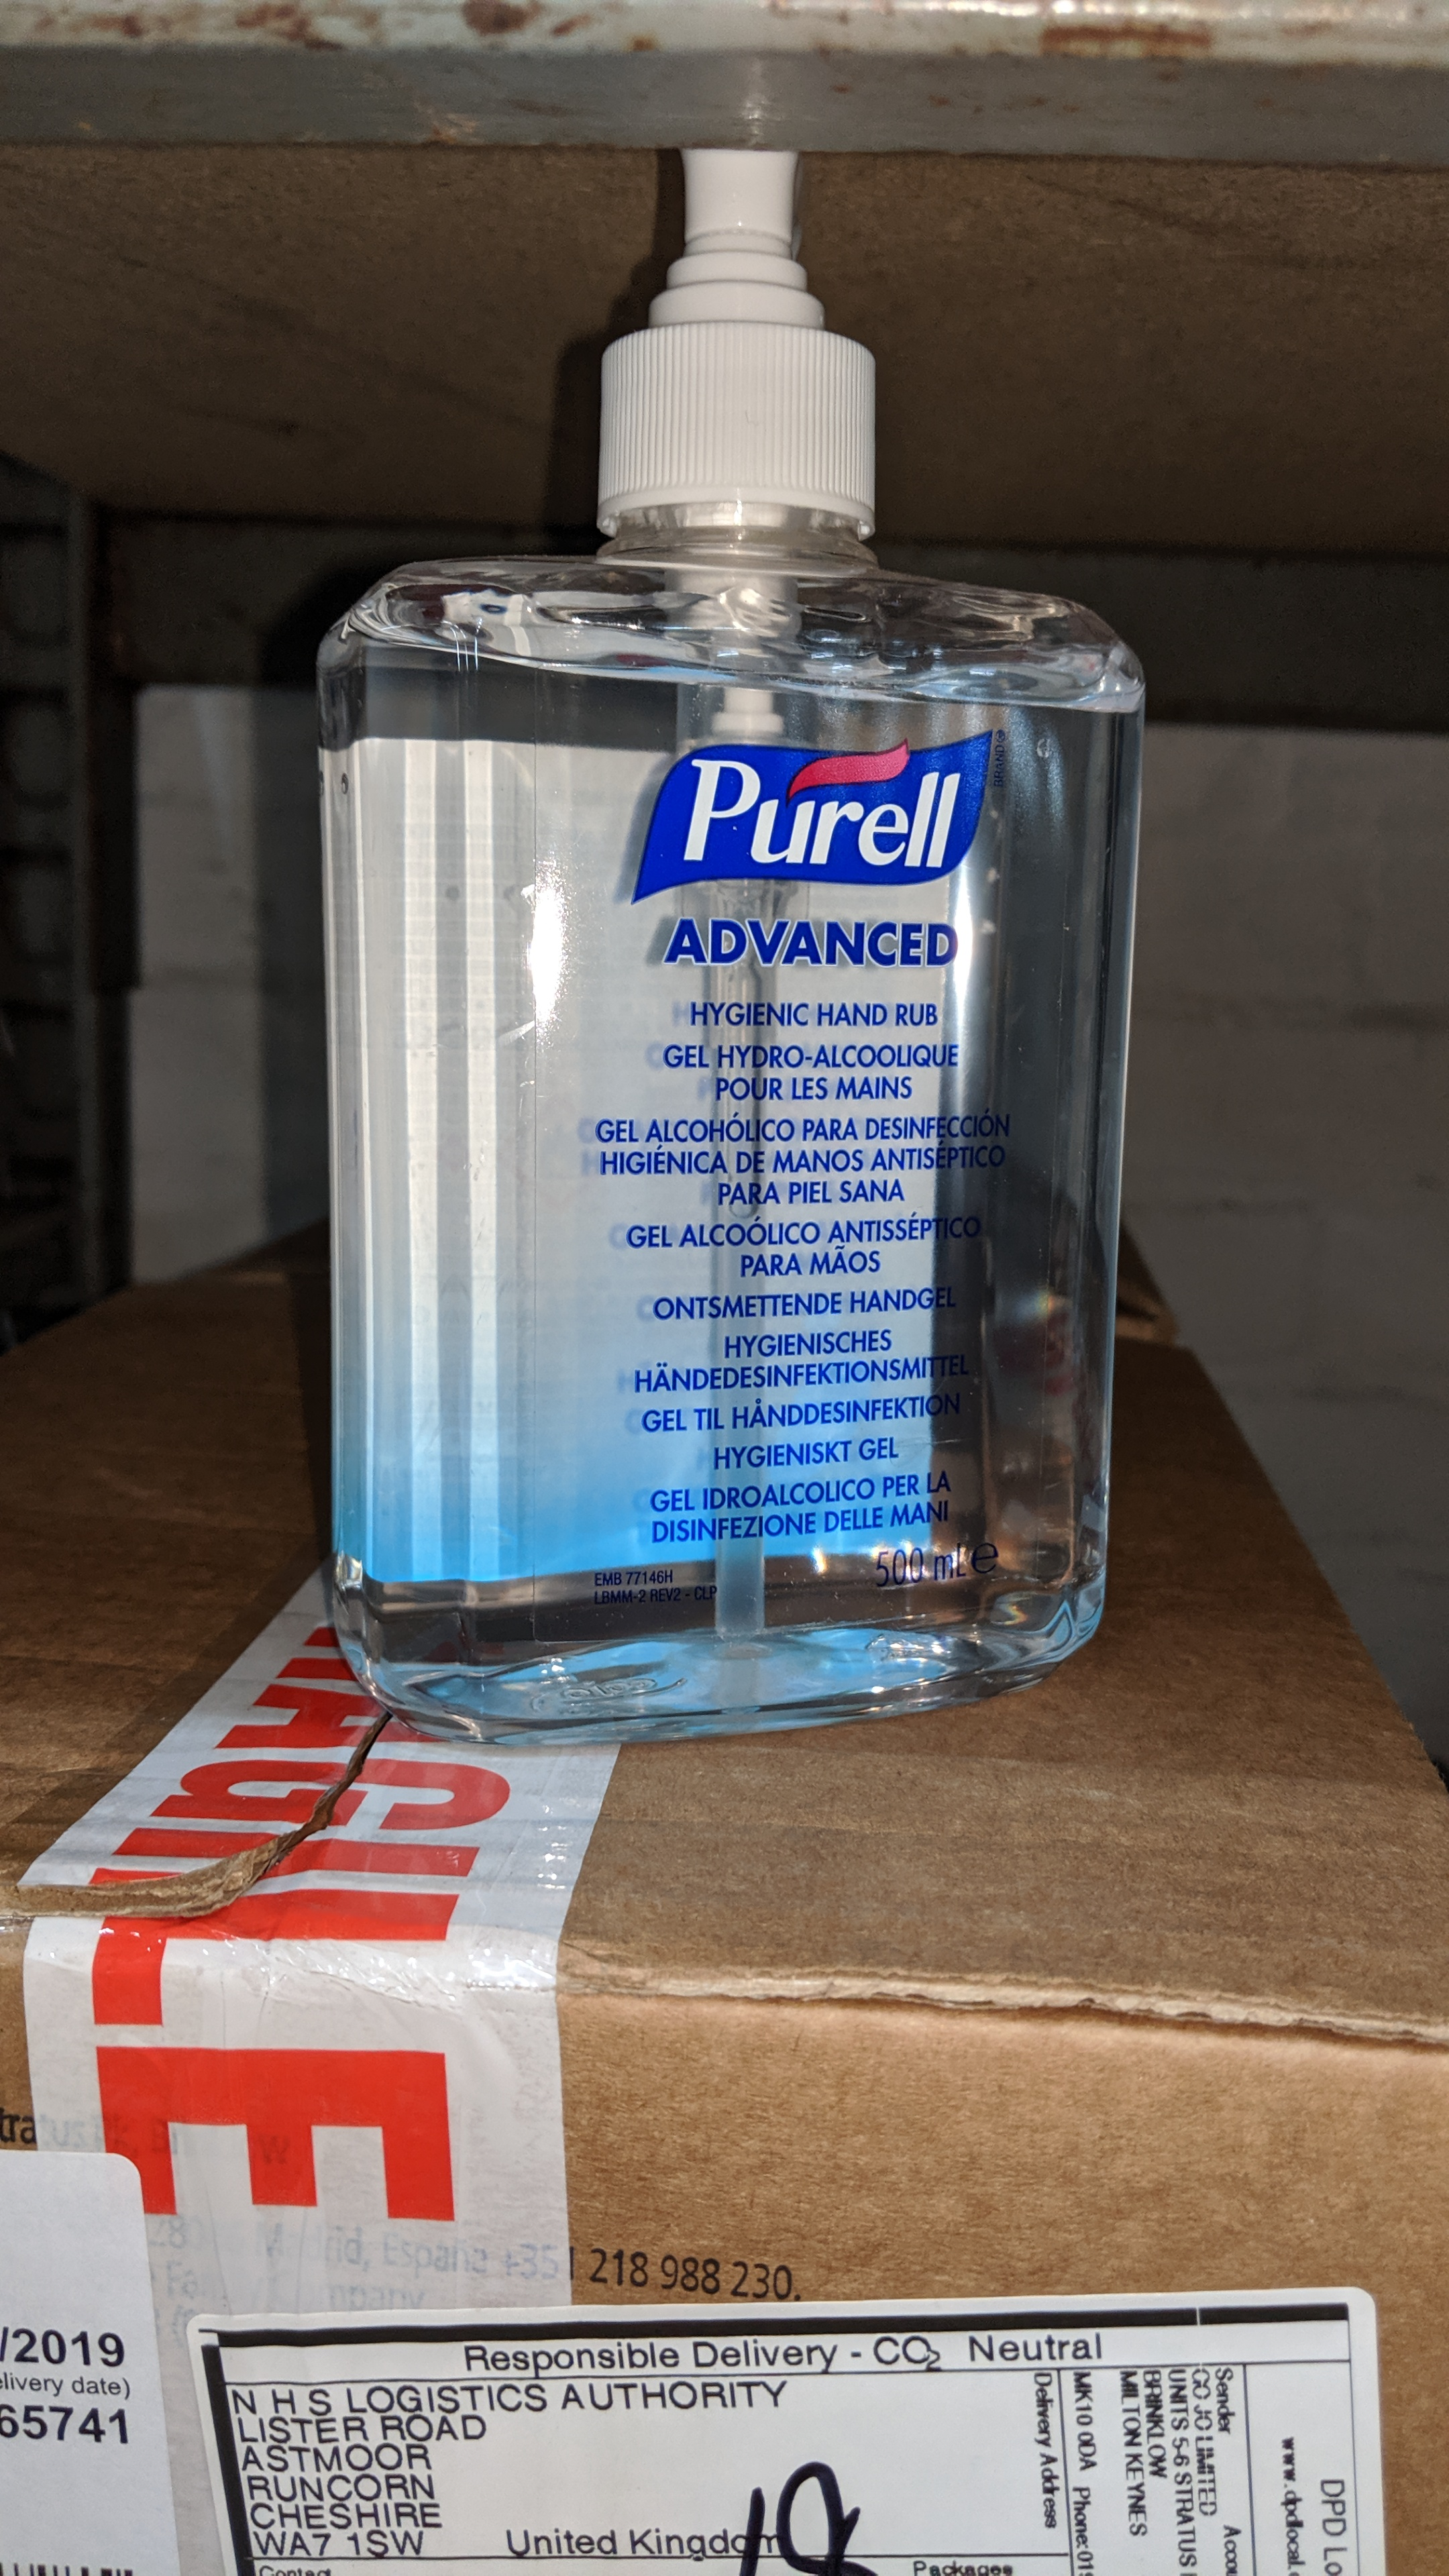 Lot 539 - 4 boxes containing a total of 48 off 500ml bottles of Purell Advanced Hygenic Hand Rub. This is